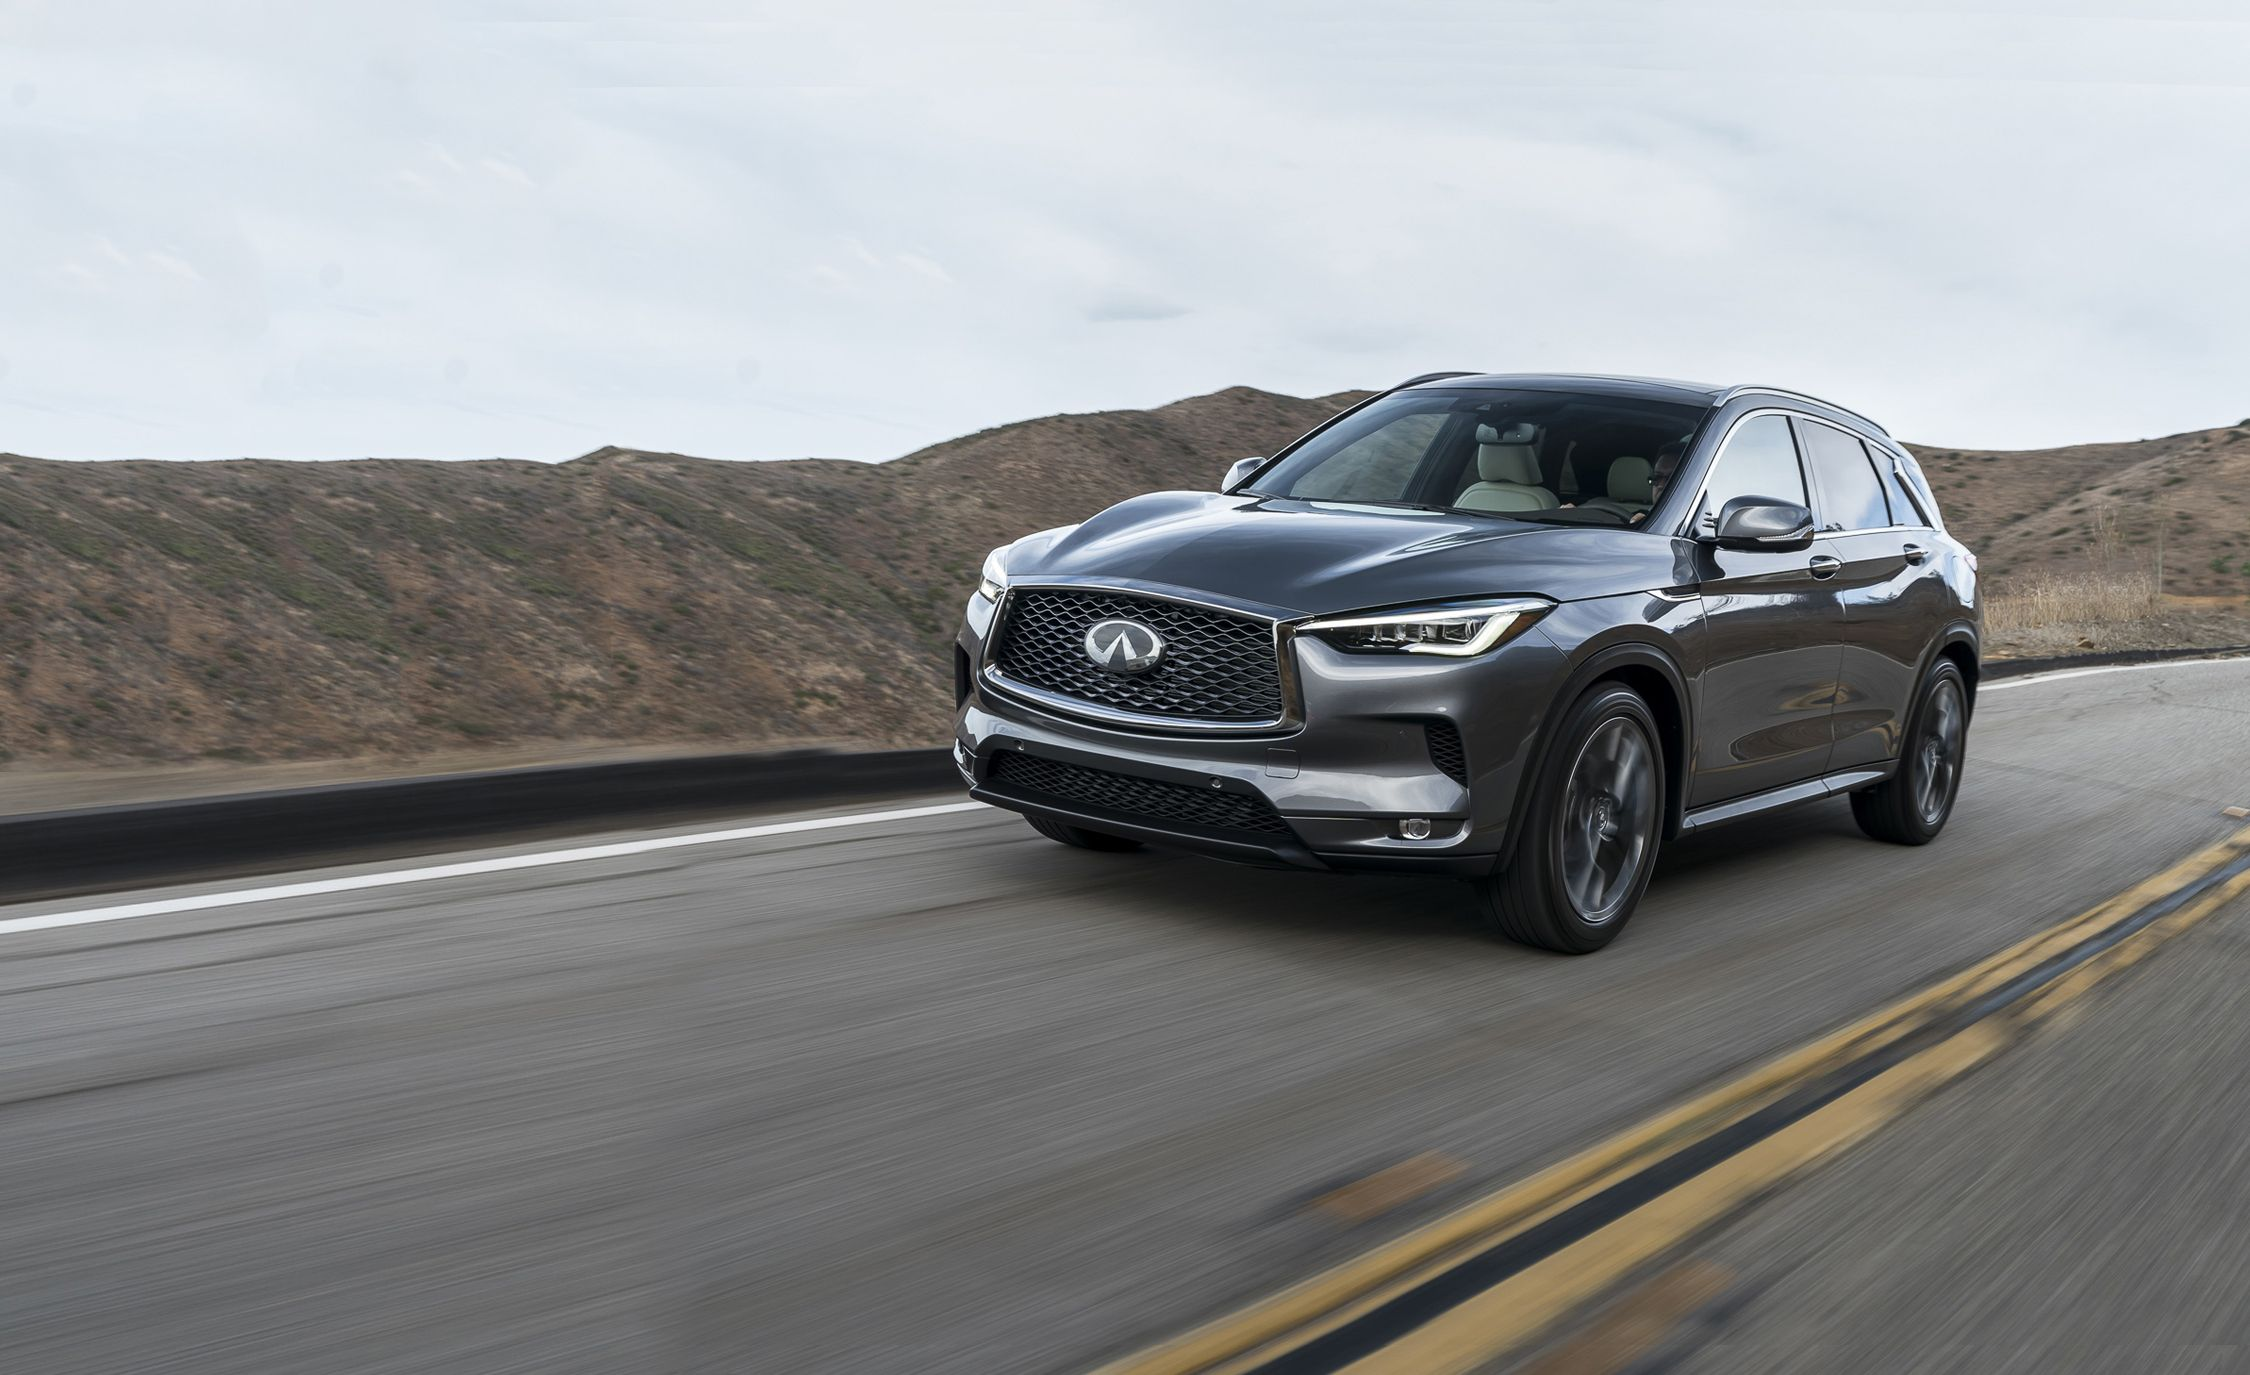 Infiniti Qx50 Price >> 2019 Infiniti QX50 First Drive | Review | Car and Driver